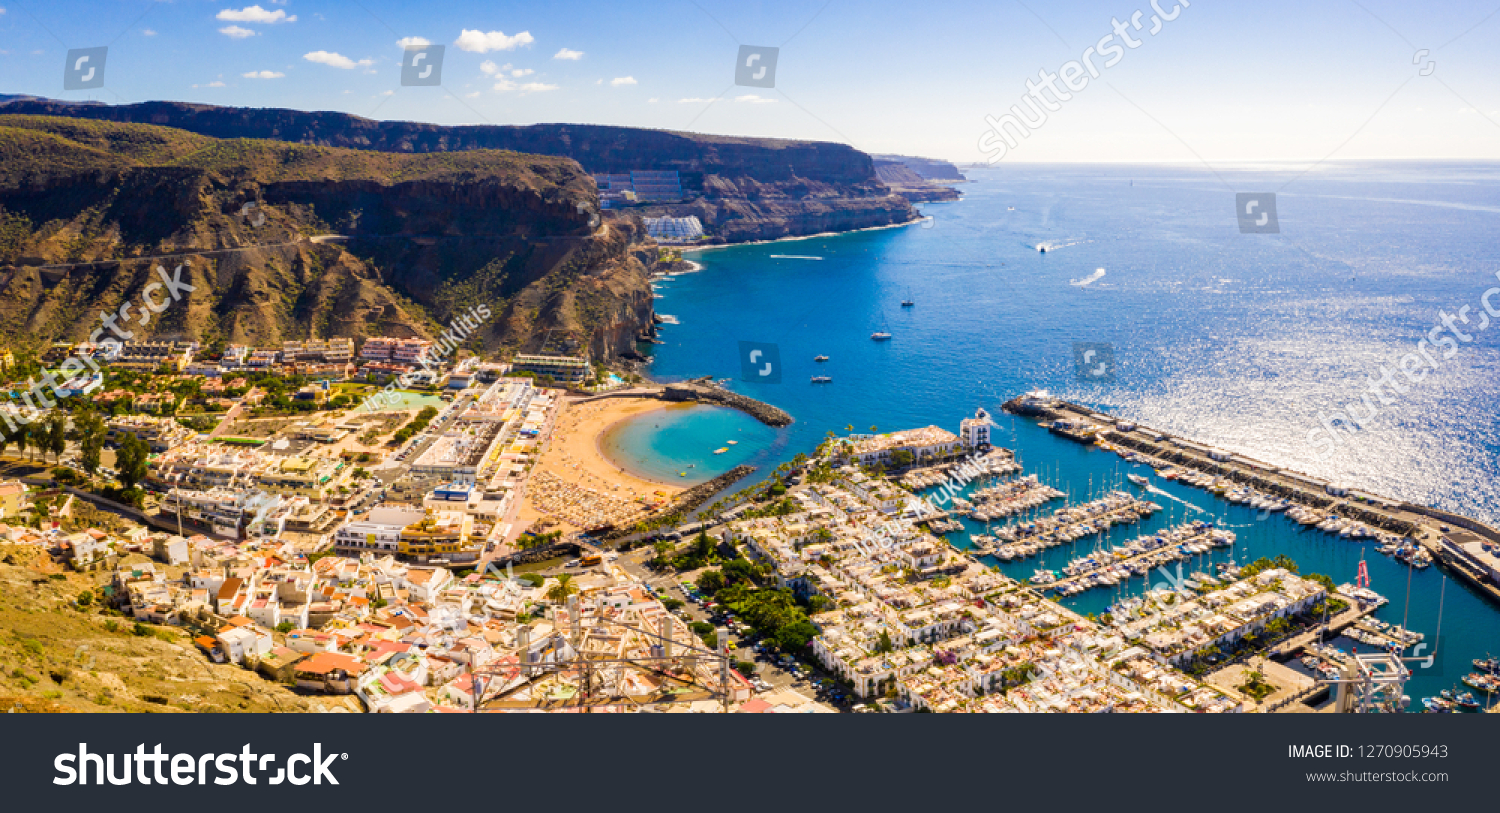 Puerto de Mogan town on the coast of Gran Canaria island, Spain. #1270905943